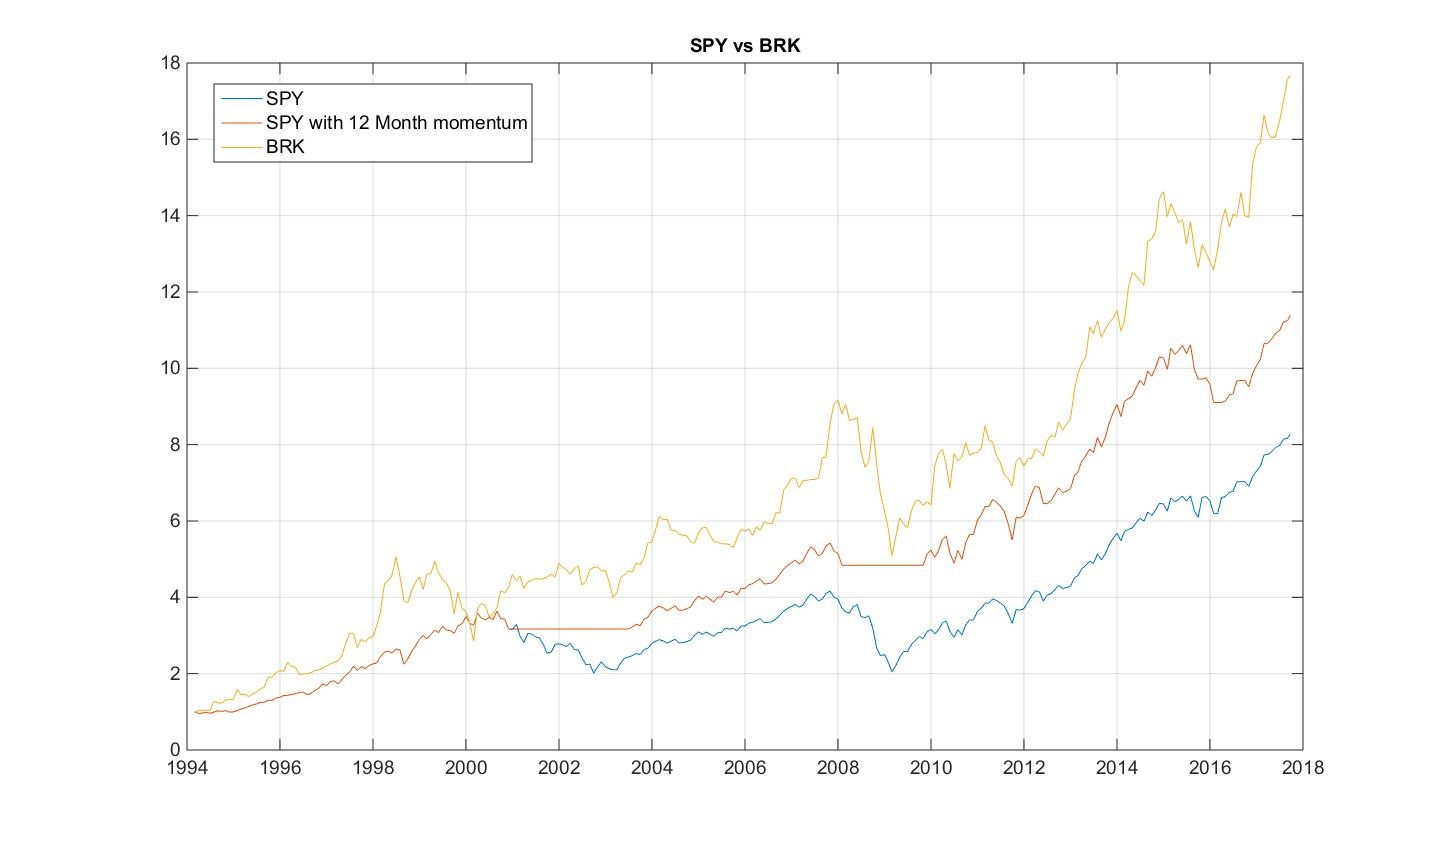 BRK vs SPY and SPY with Momentum applied